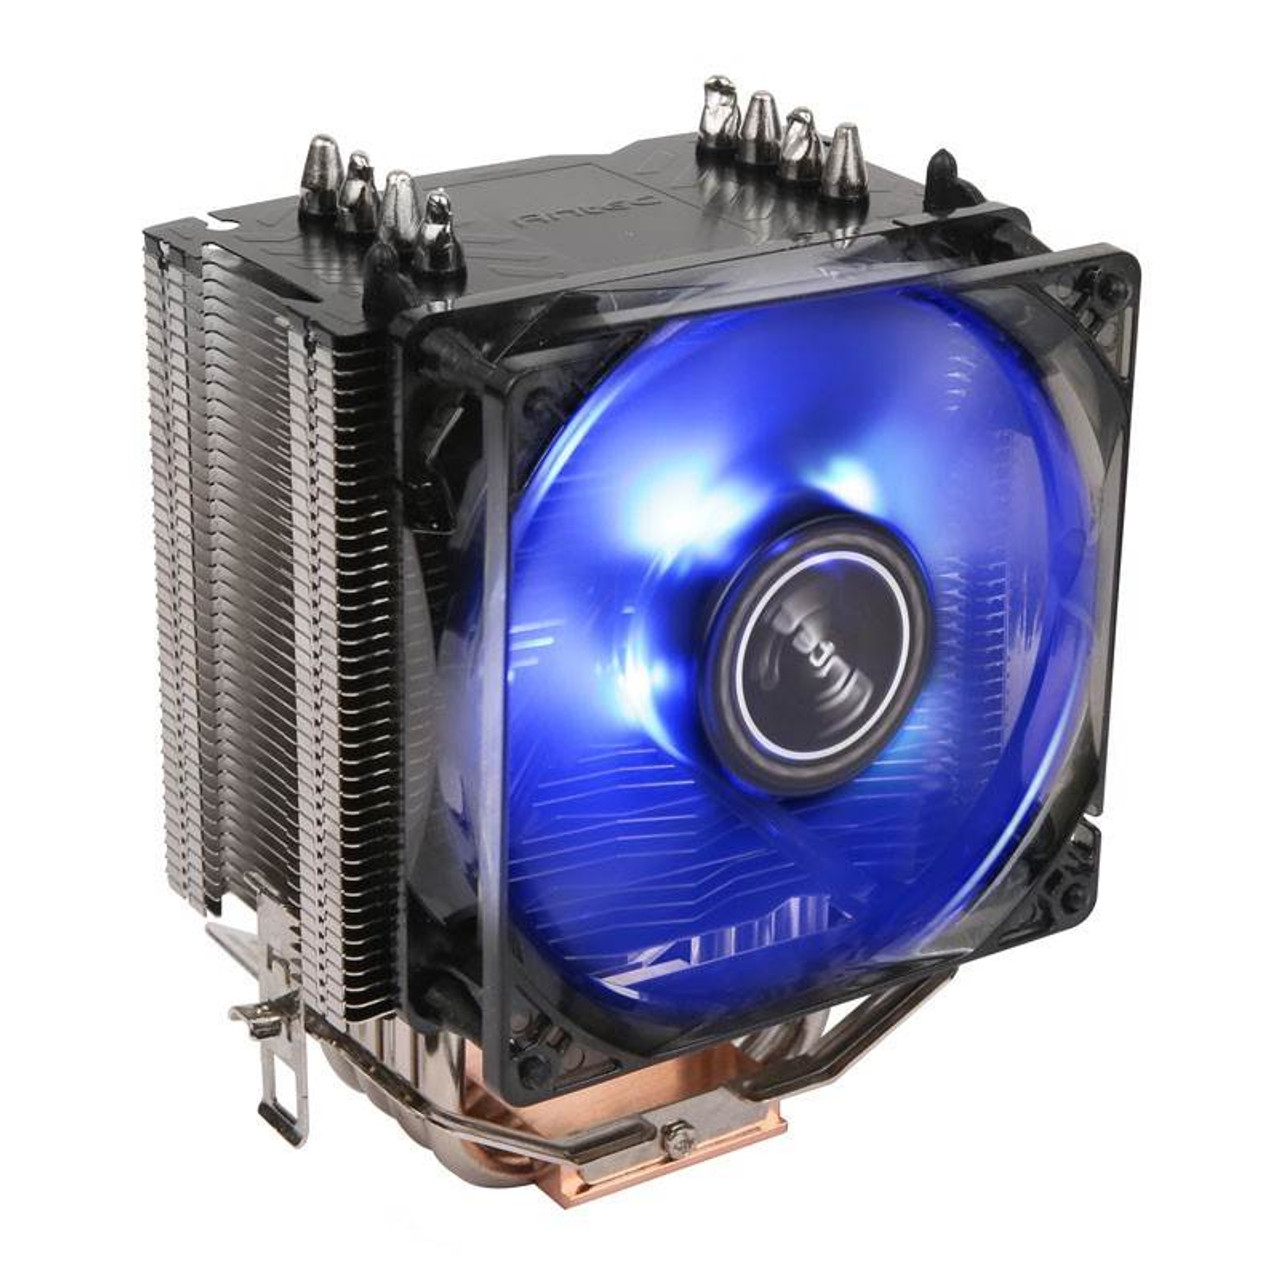 Image for Antec C40 CPU Air Cooler CX Computer Superstore